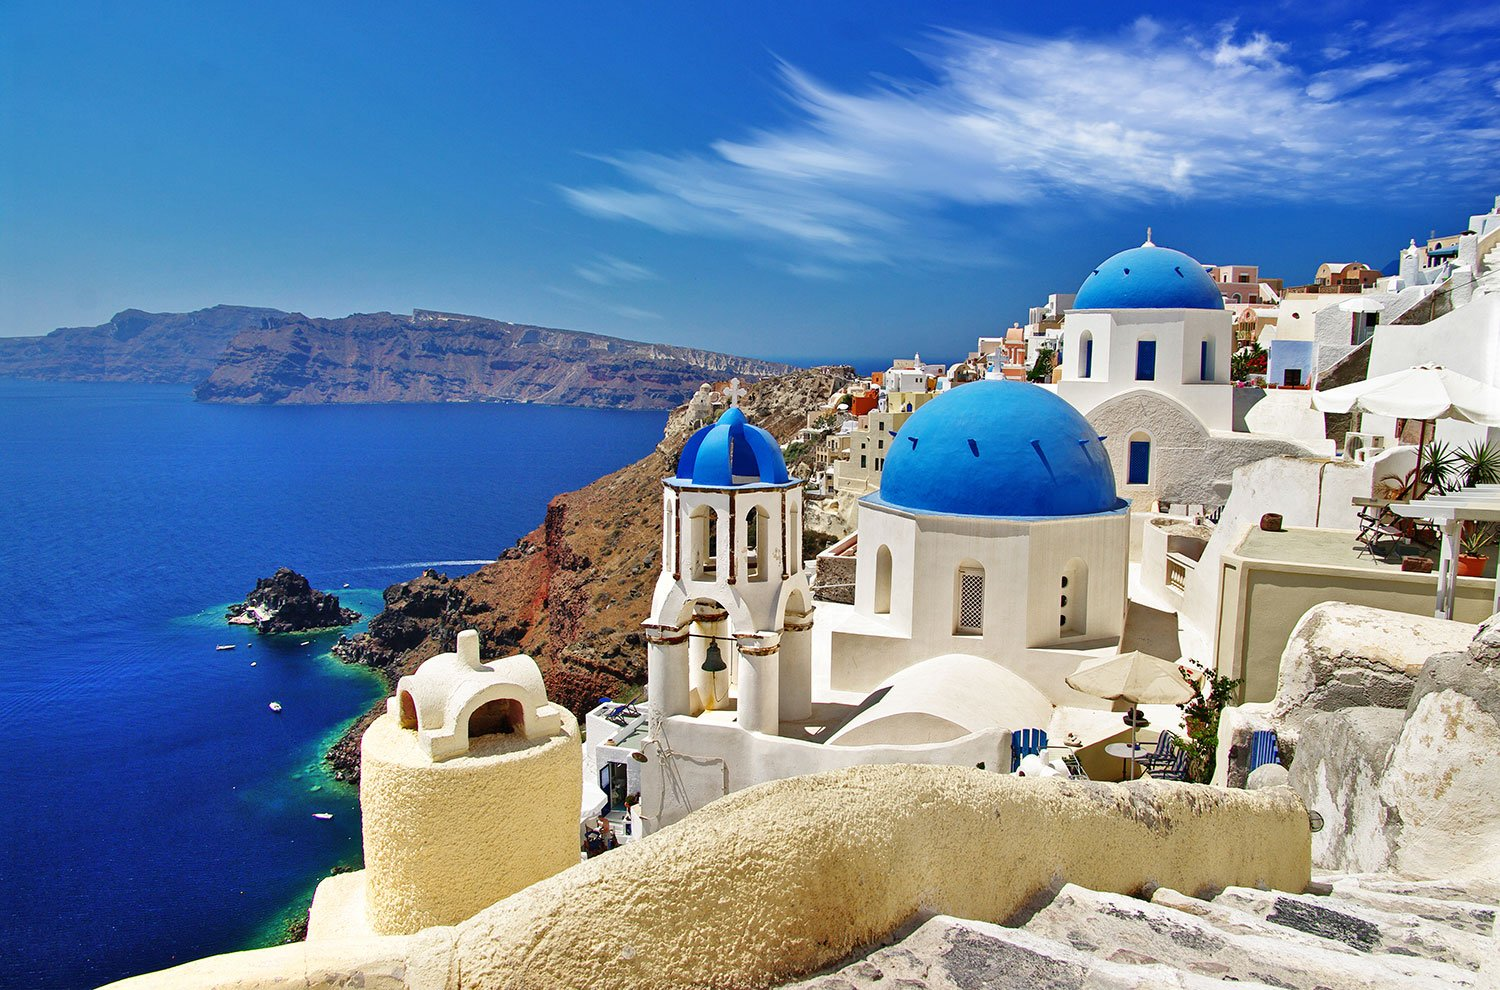 White buildings with blue domes next to the vibrant blue sea in Greece